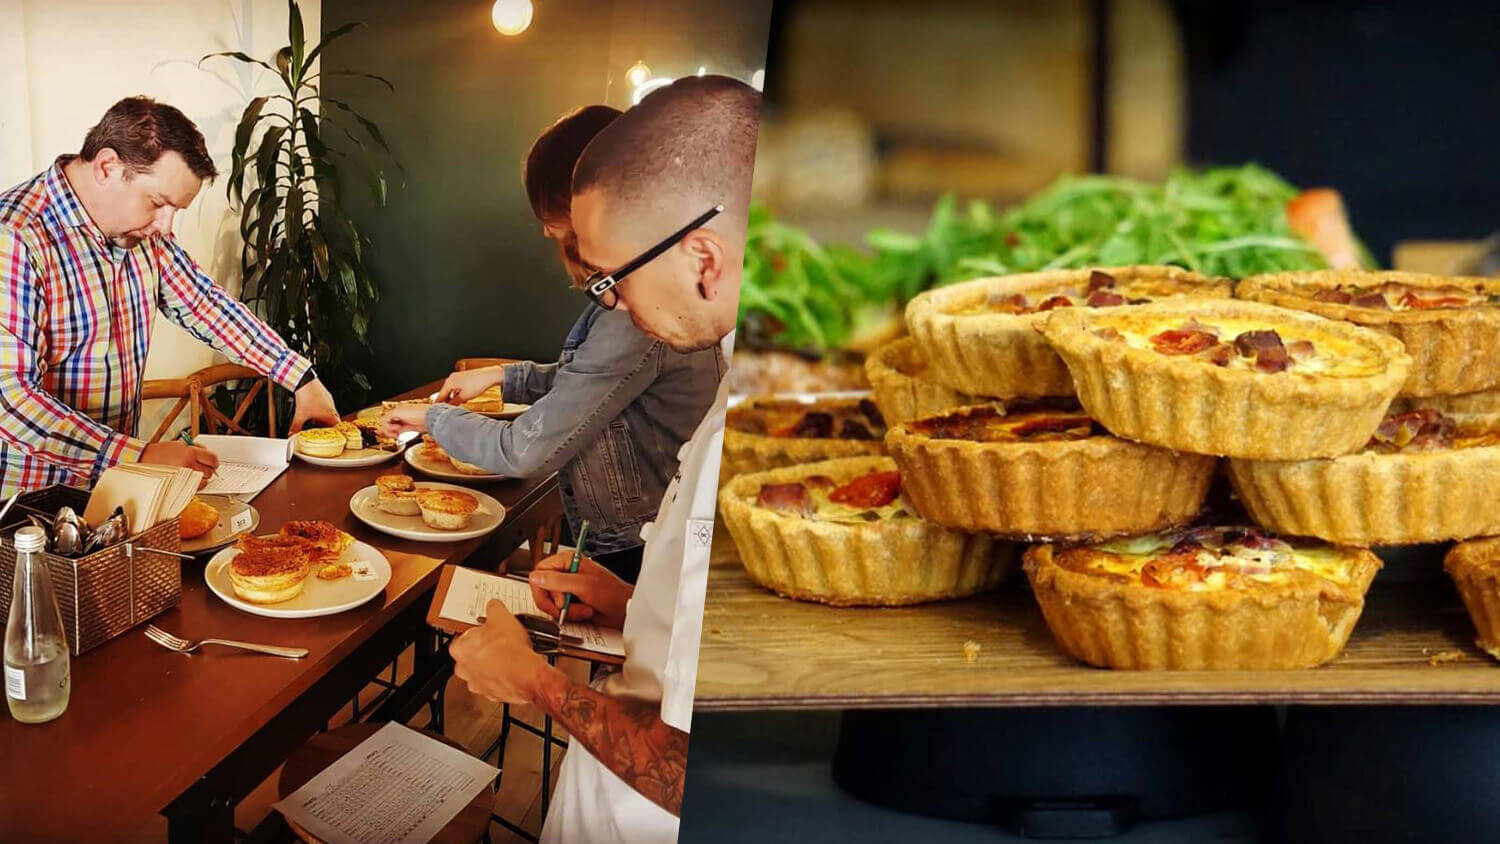 Vegan Society New Zealand Hosts Nation's First Ever Plant-Based Pie Competition